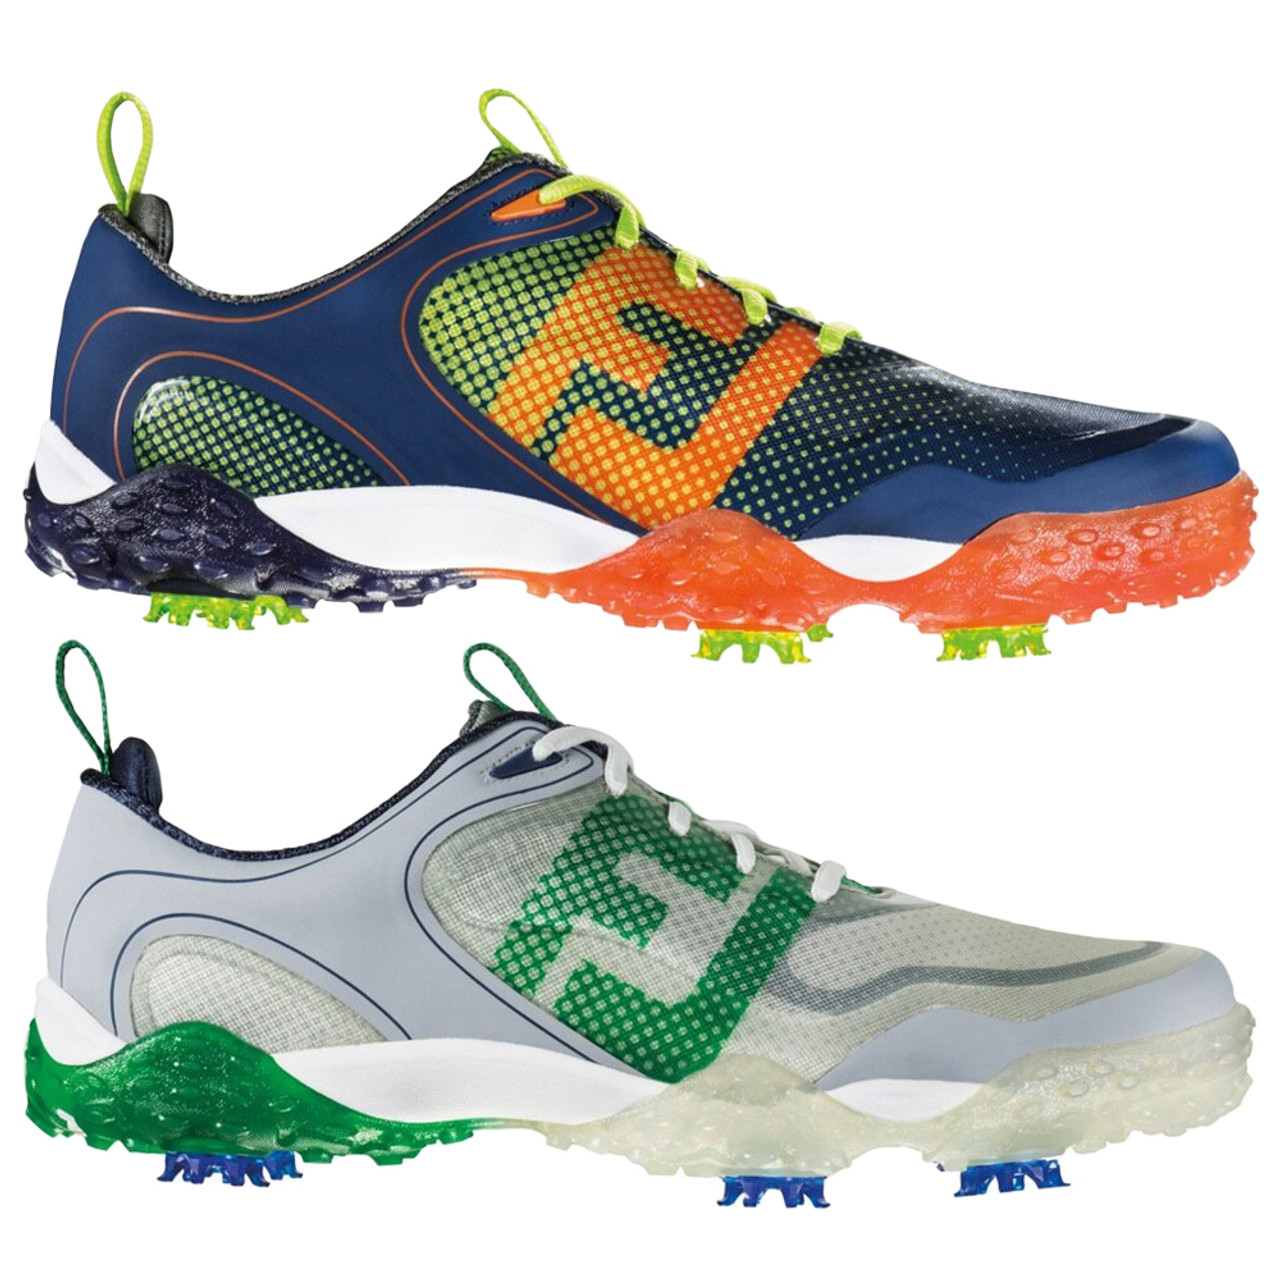 FootJoy Freestyle Golf Shoes CLOSEOUT